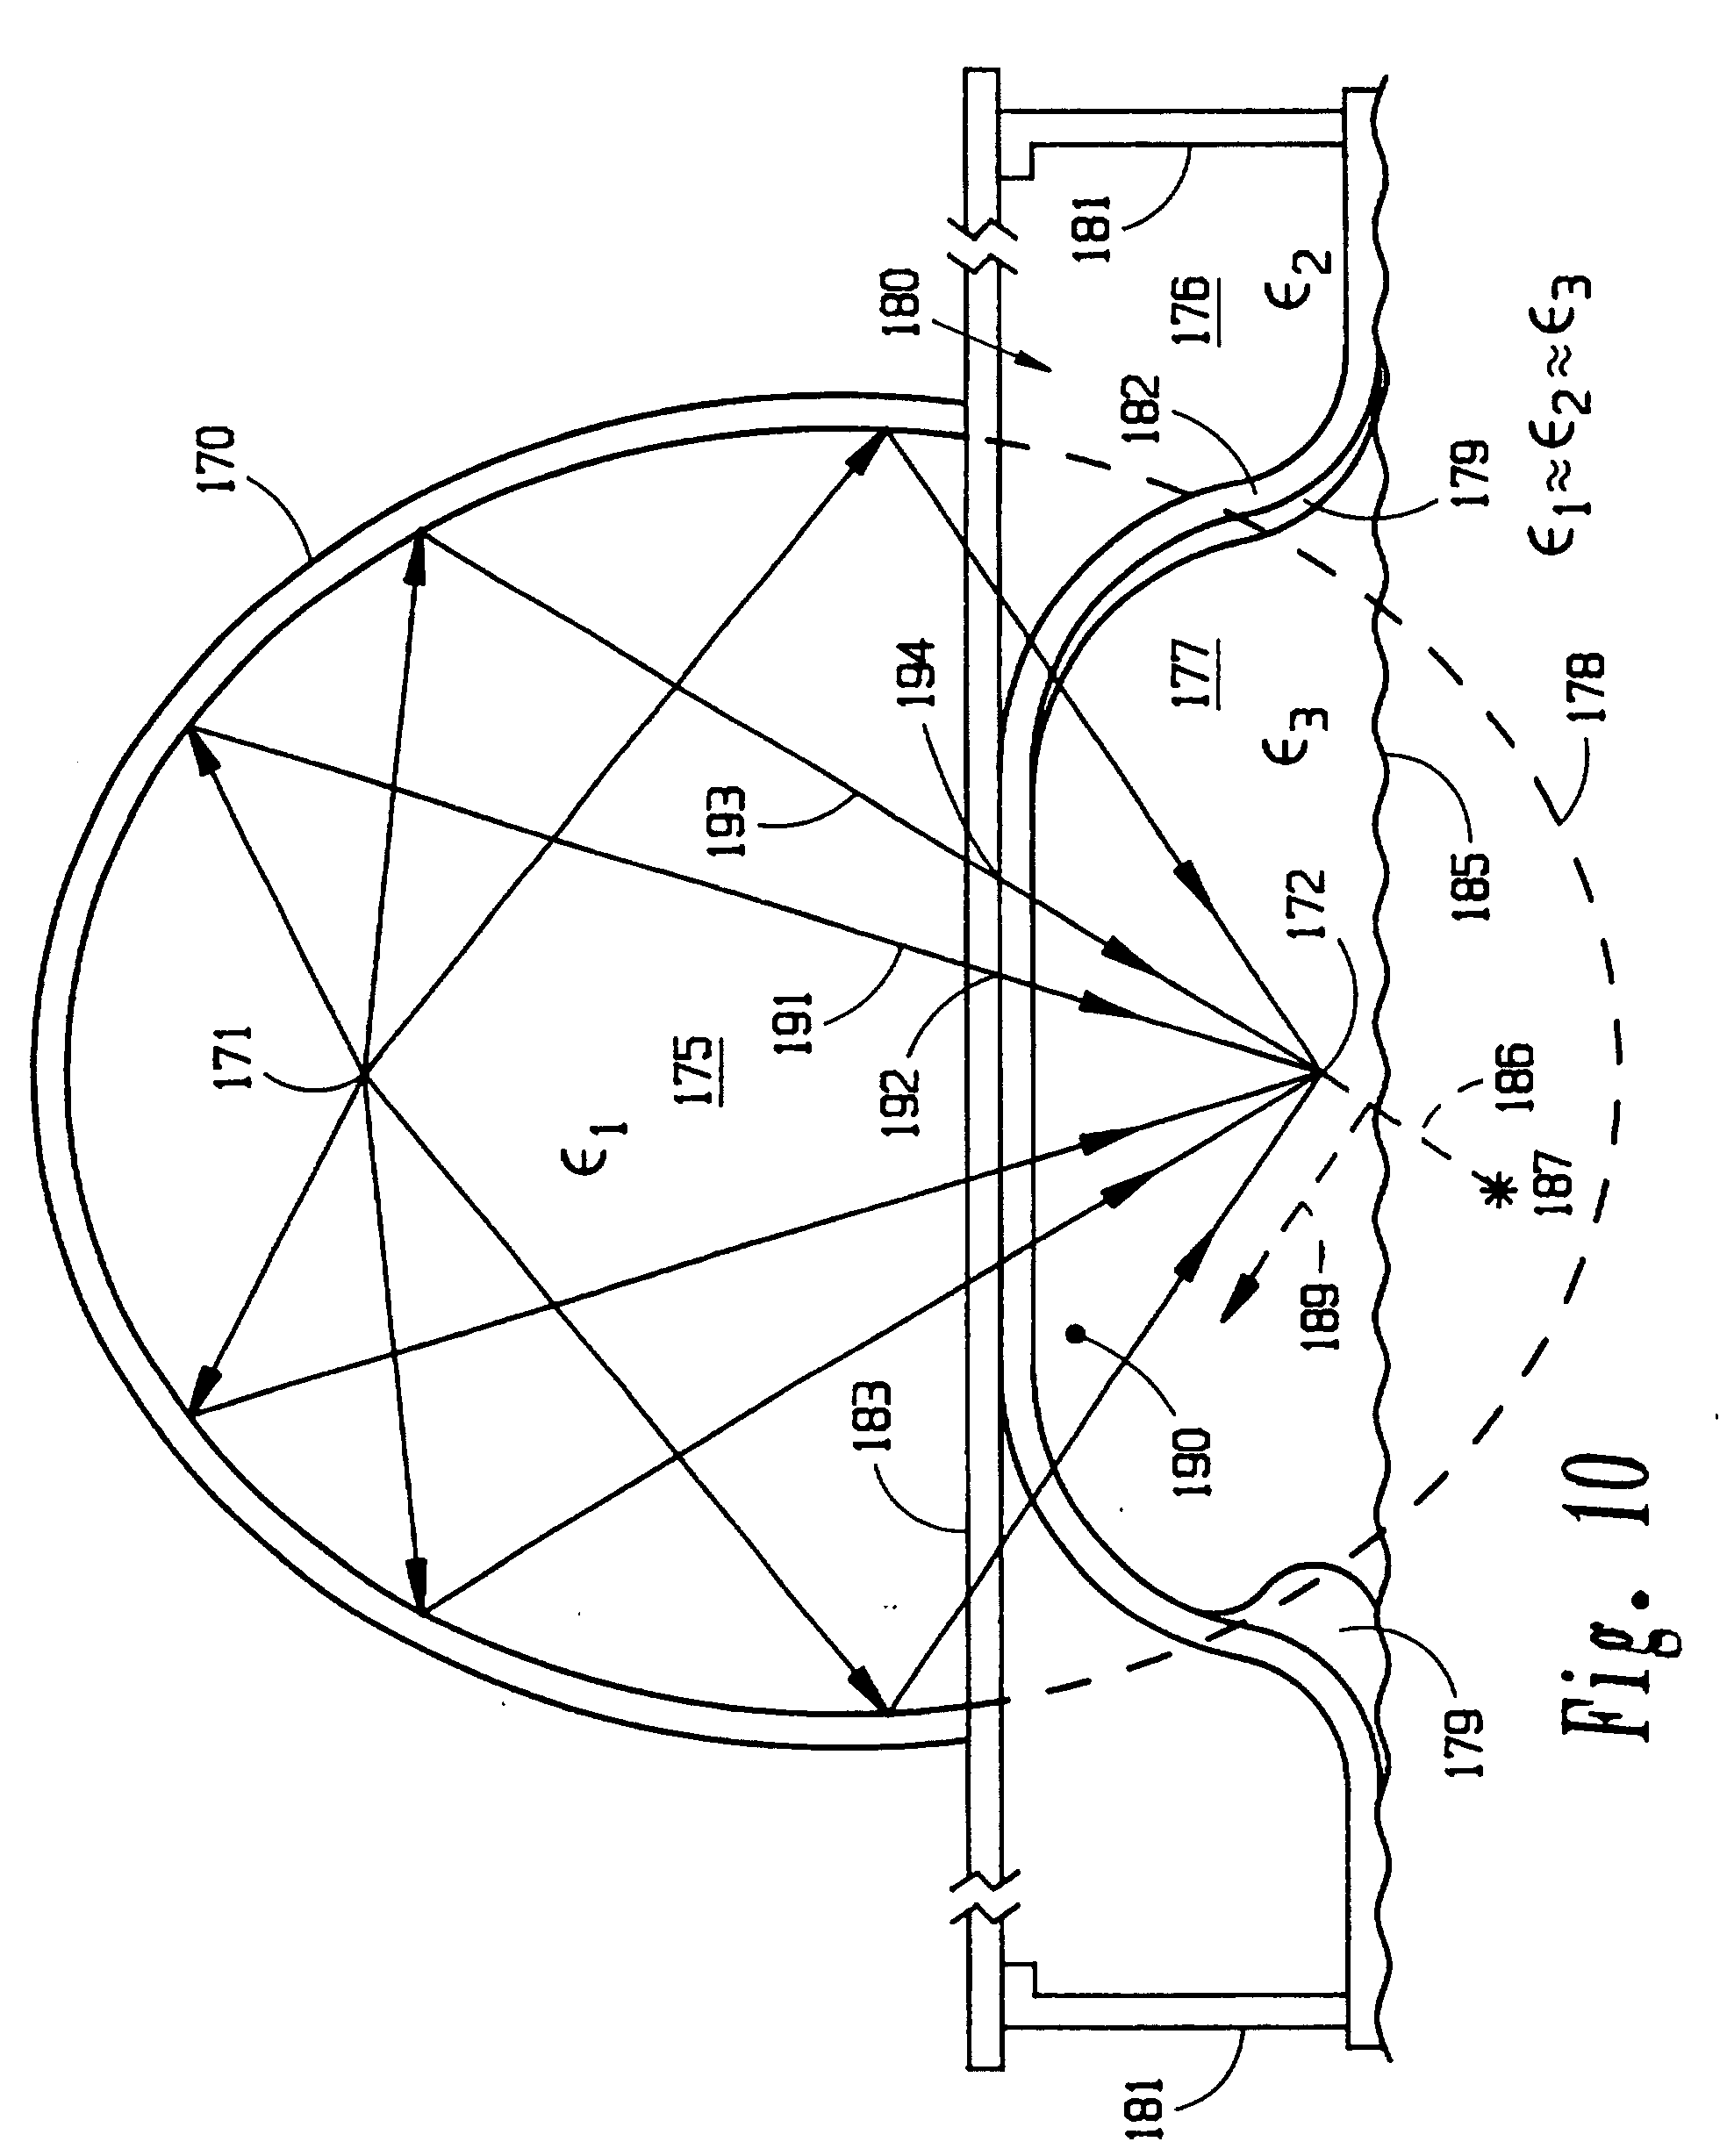 Diagram Demonstrates Two Pi Radians Are Around A Circle